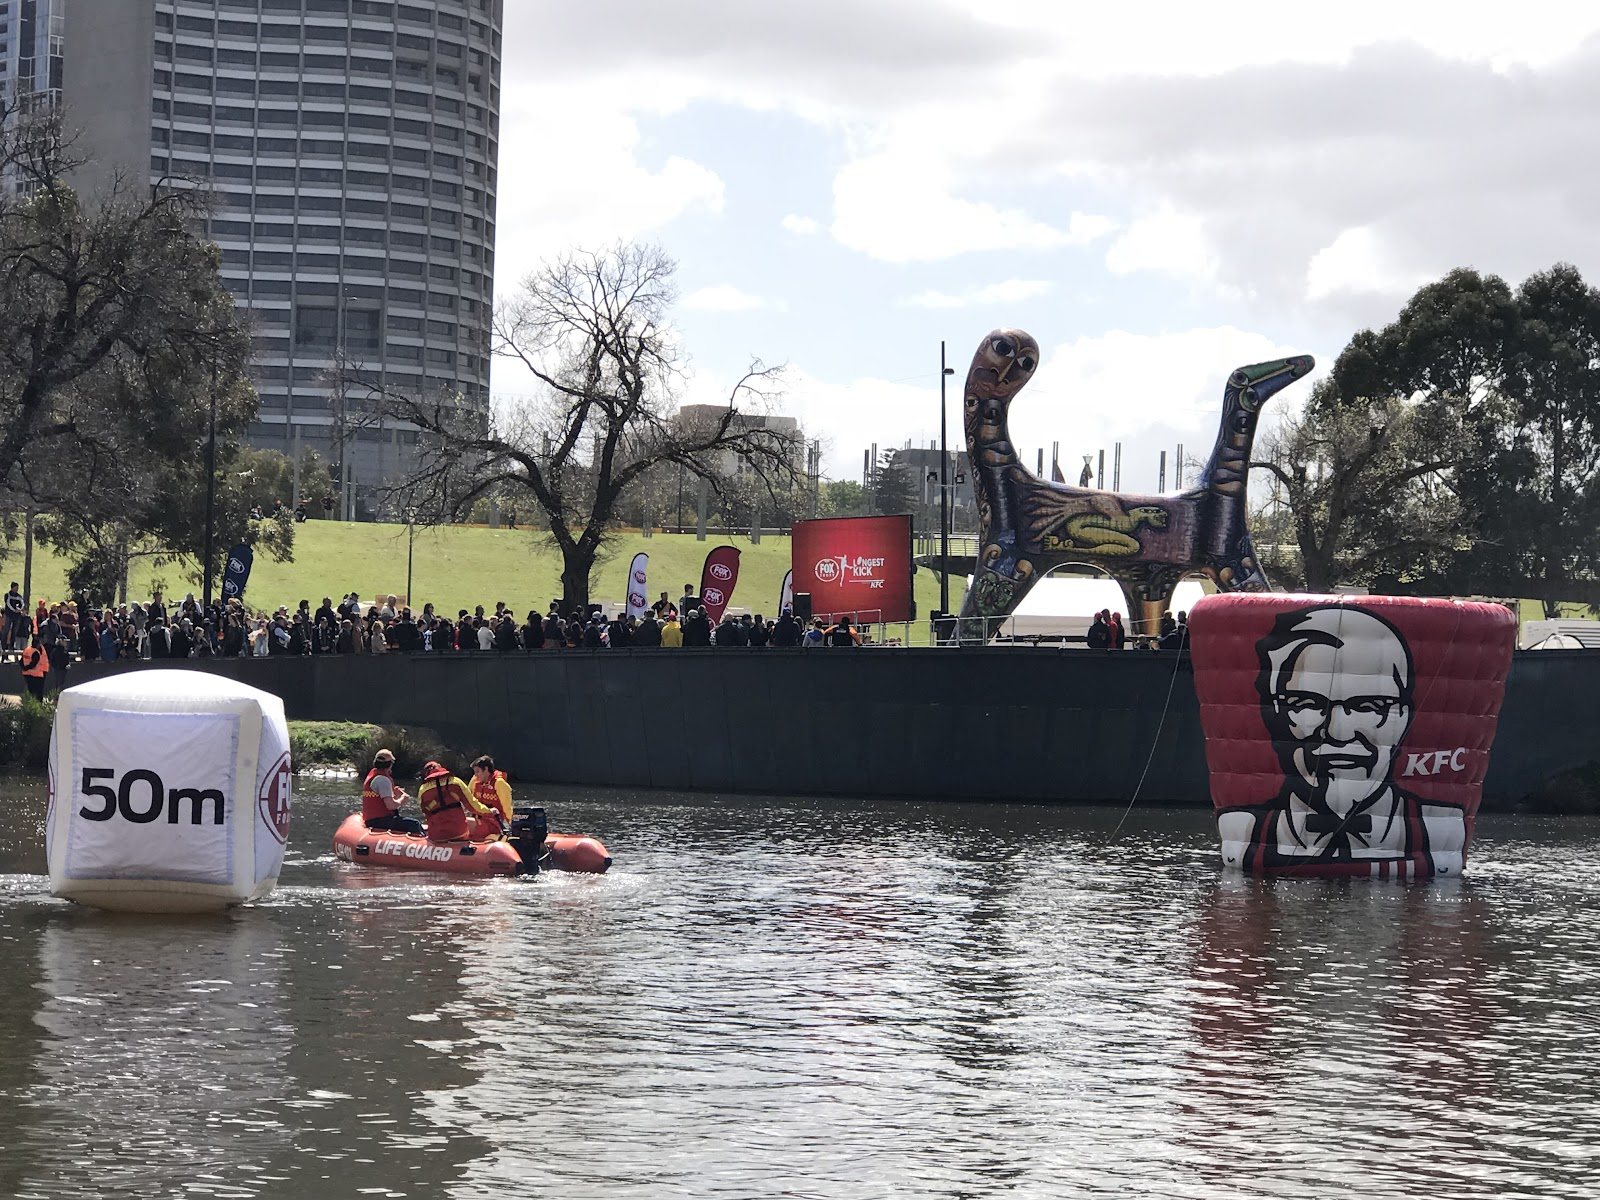 Floating Fox Footy, AFL and KFC Giant Inflatable targets